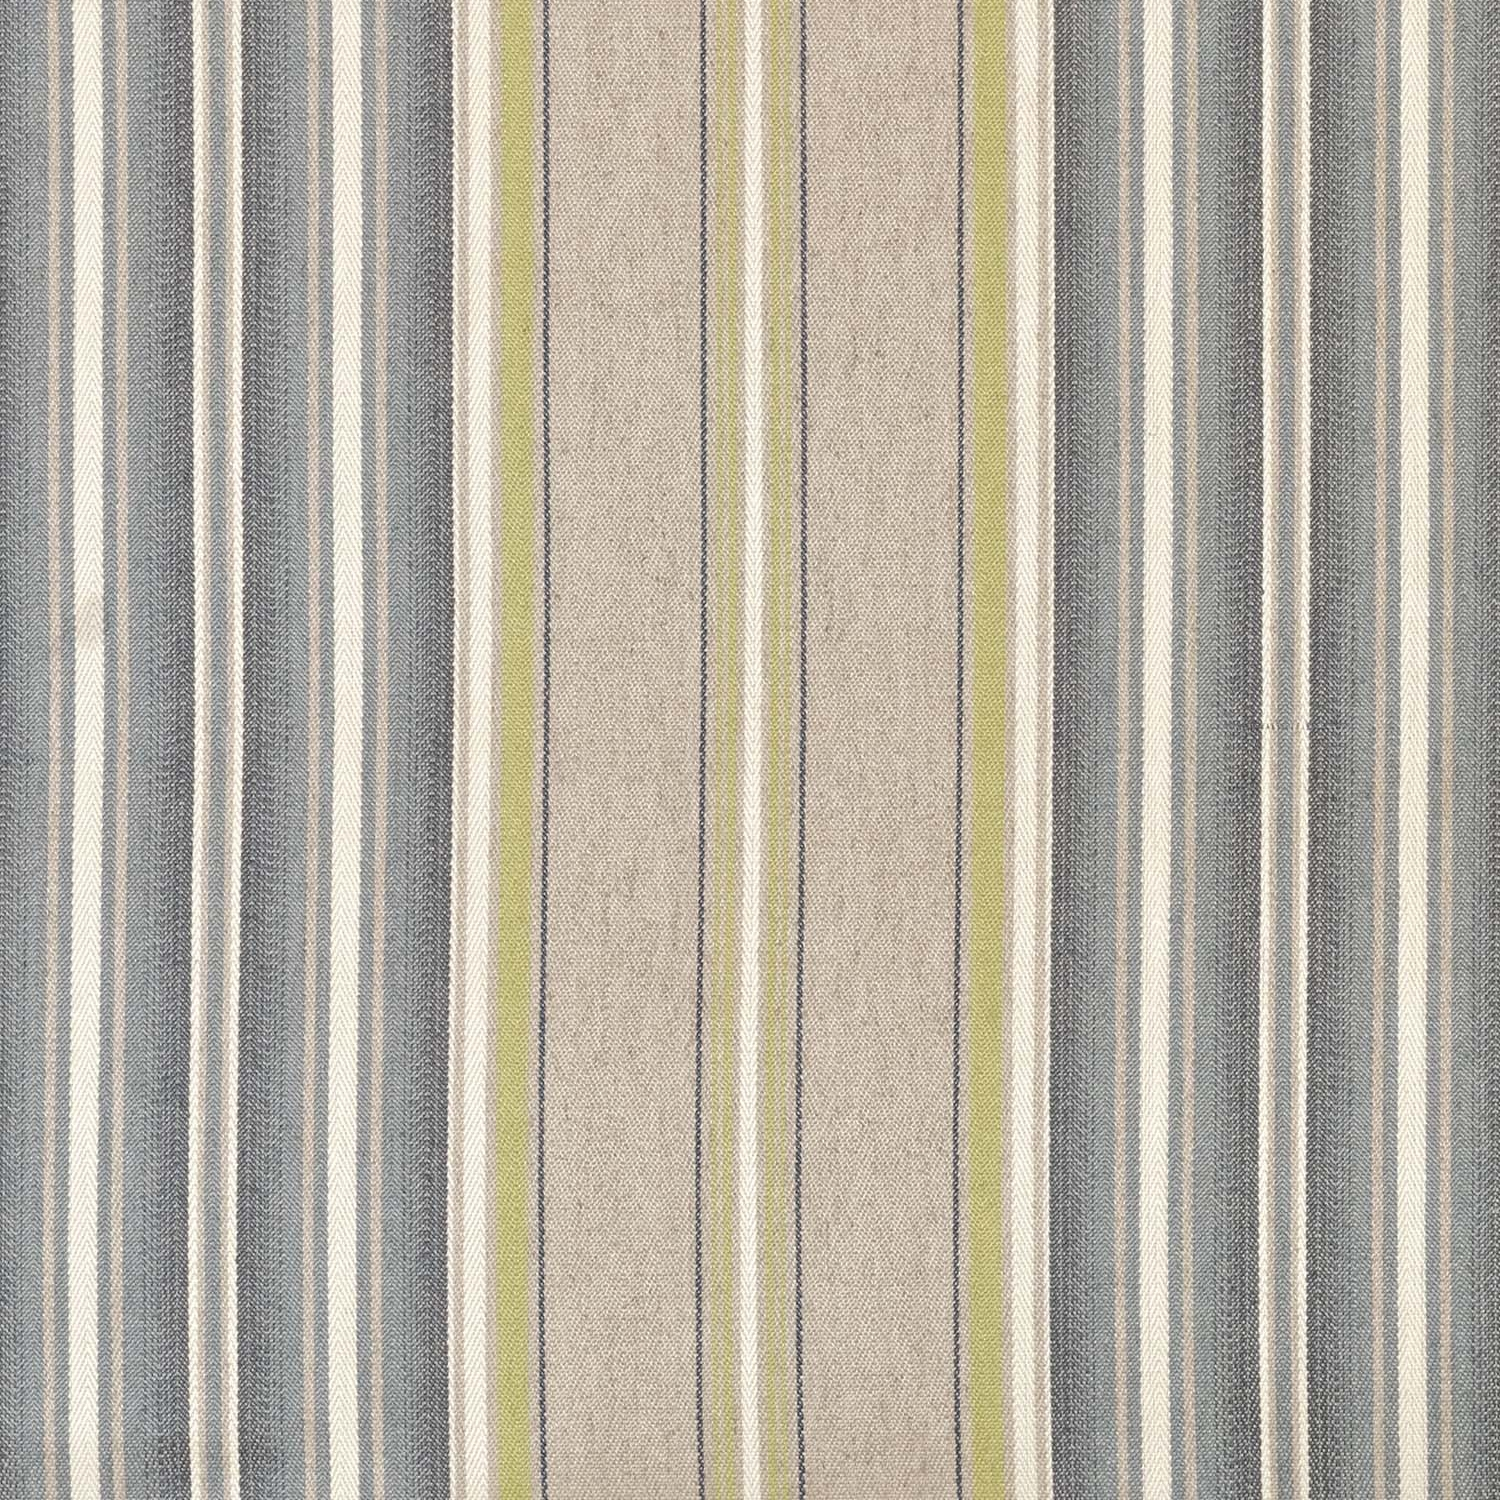 Copy of <p><strong>WINDSOR STRIPE</strong>beige/blue/lime 4900-03<a href=/the-winthorp-collection/windsor-stripe-beige-blue-lime-4900-03>More →</a></p>